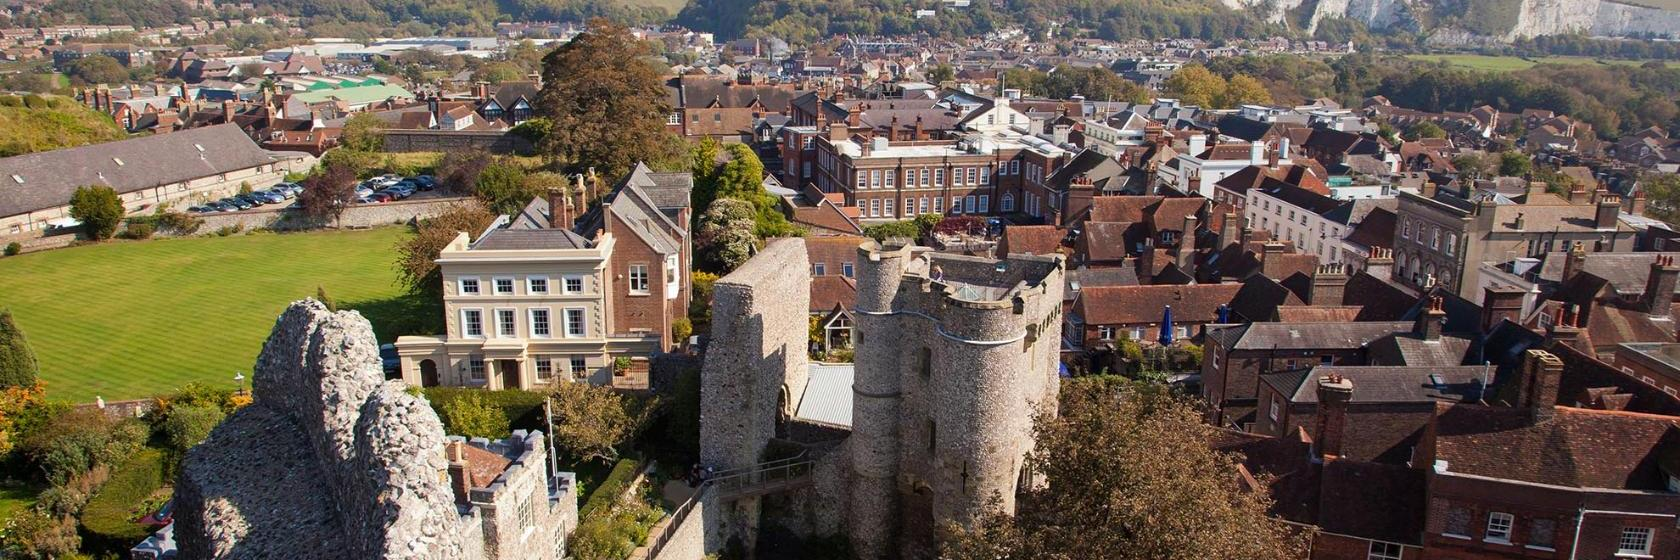 The 10 Best Hotels In Newhaven East Sussex Cheap Newhaven